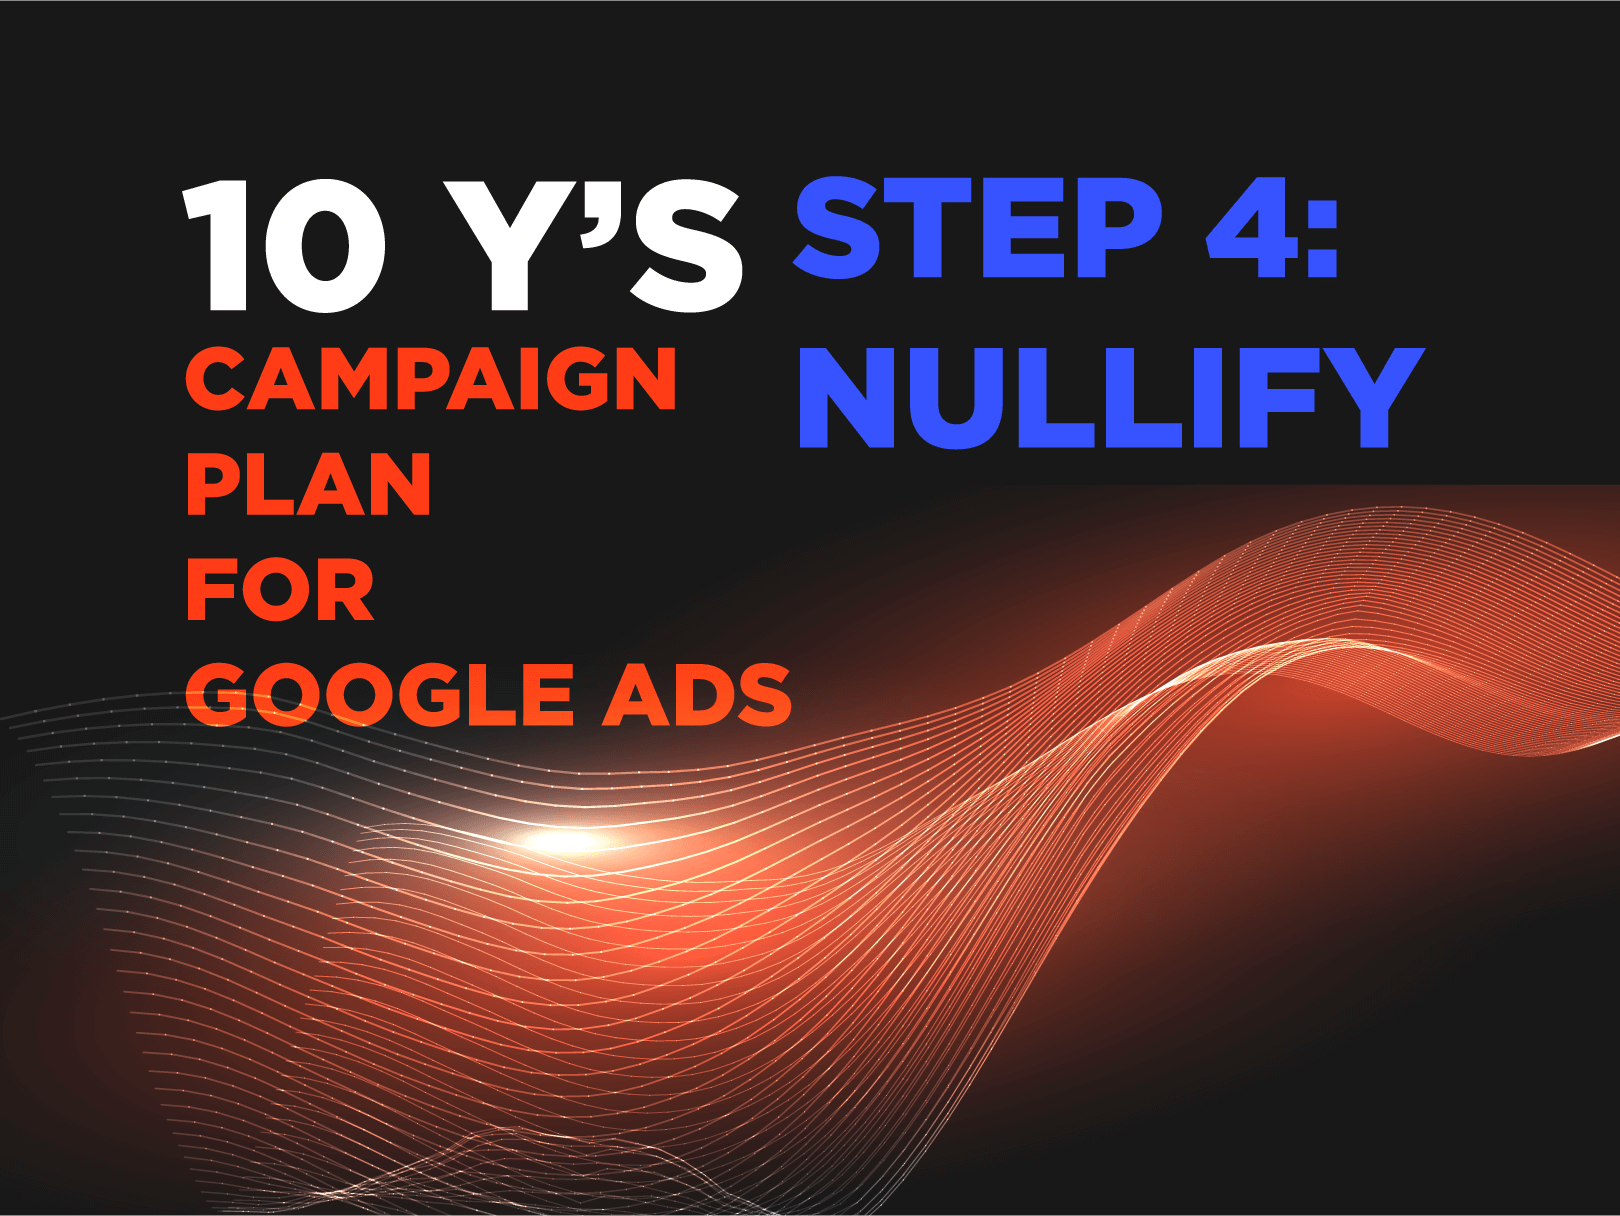 SEM Campaigns: 10 Y's Campaign Plan for Google Ads